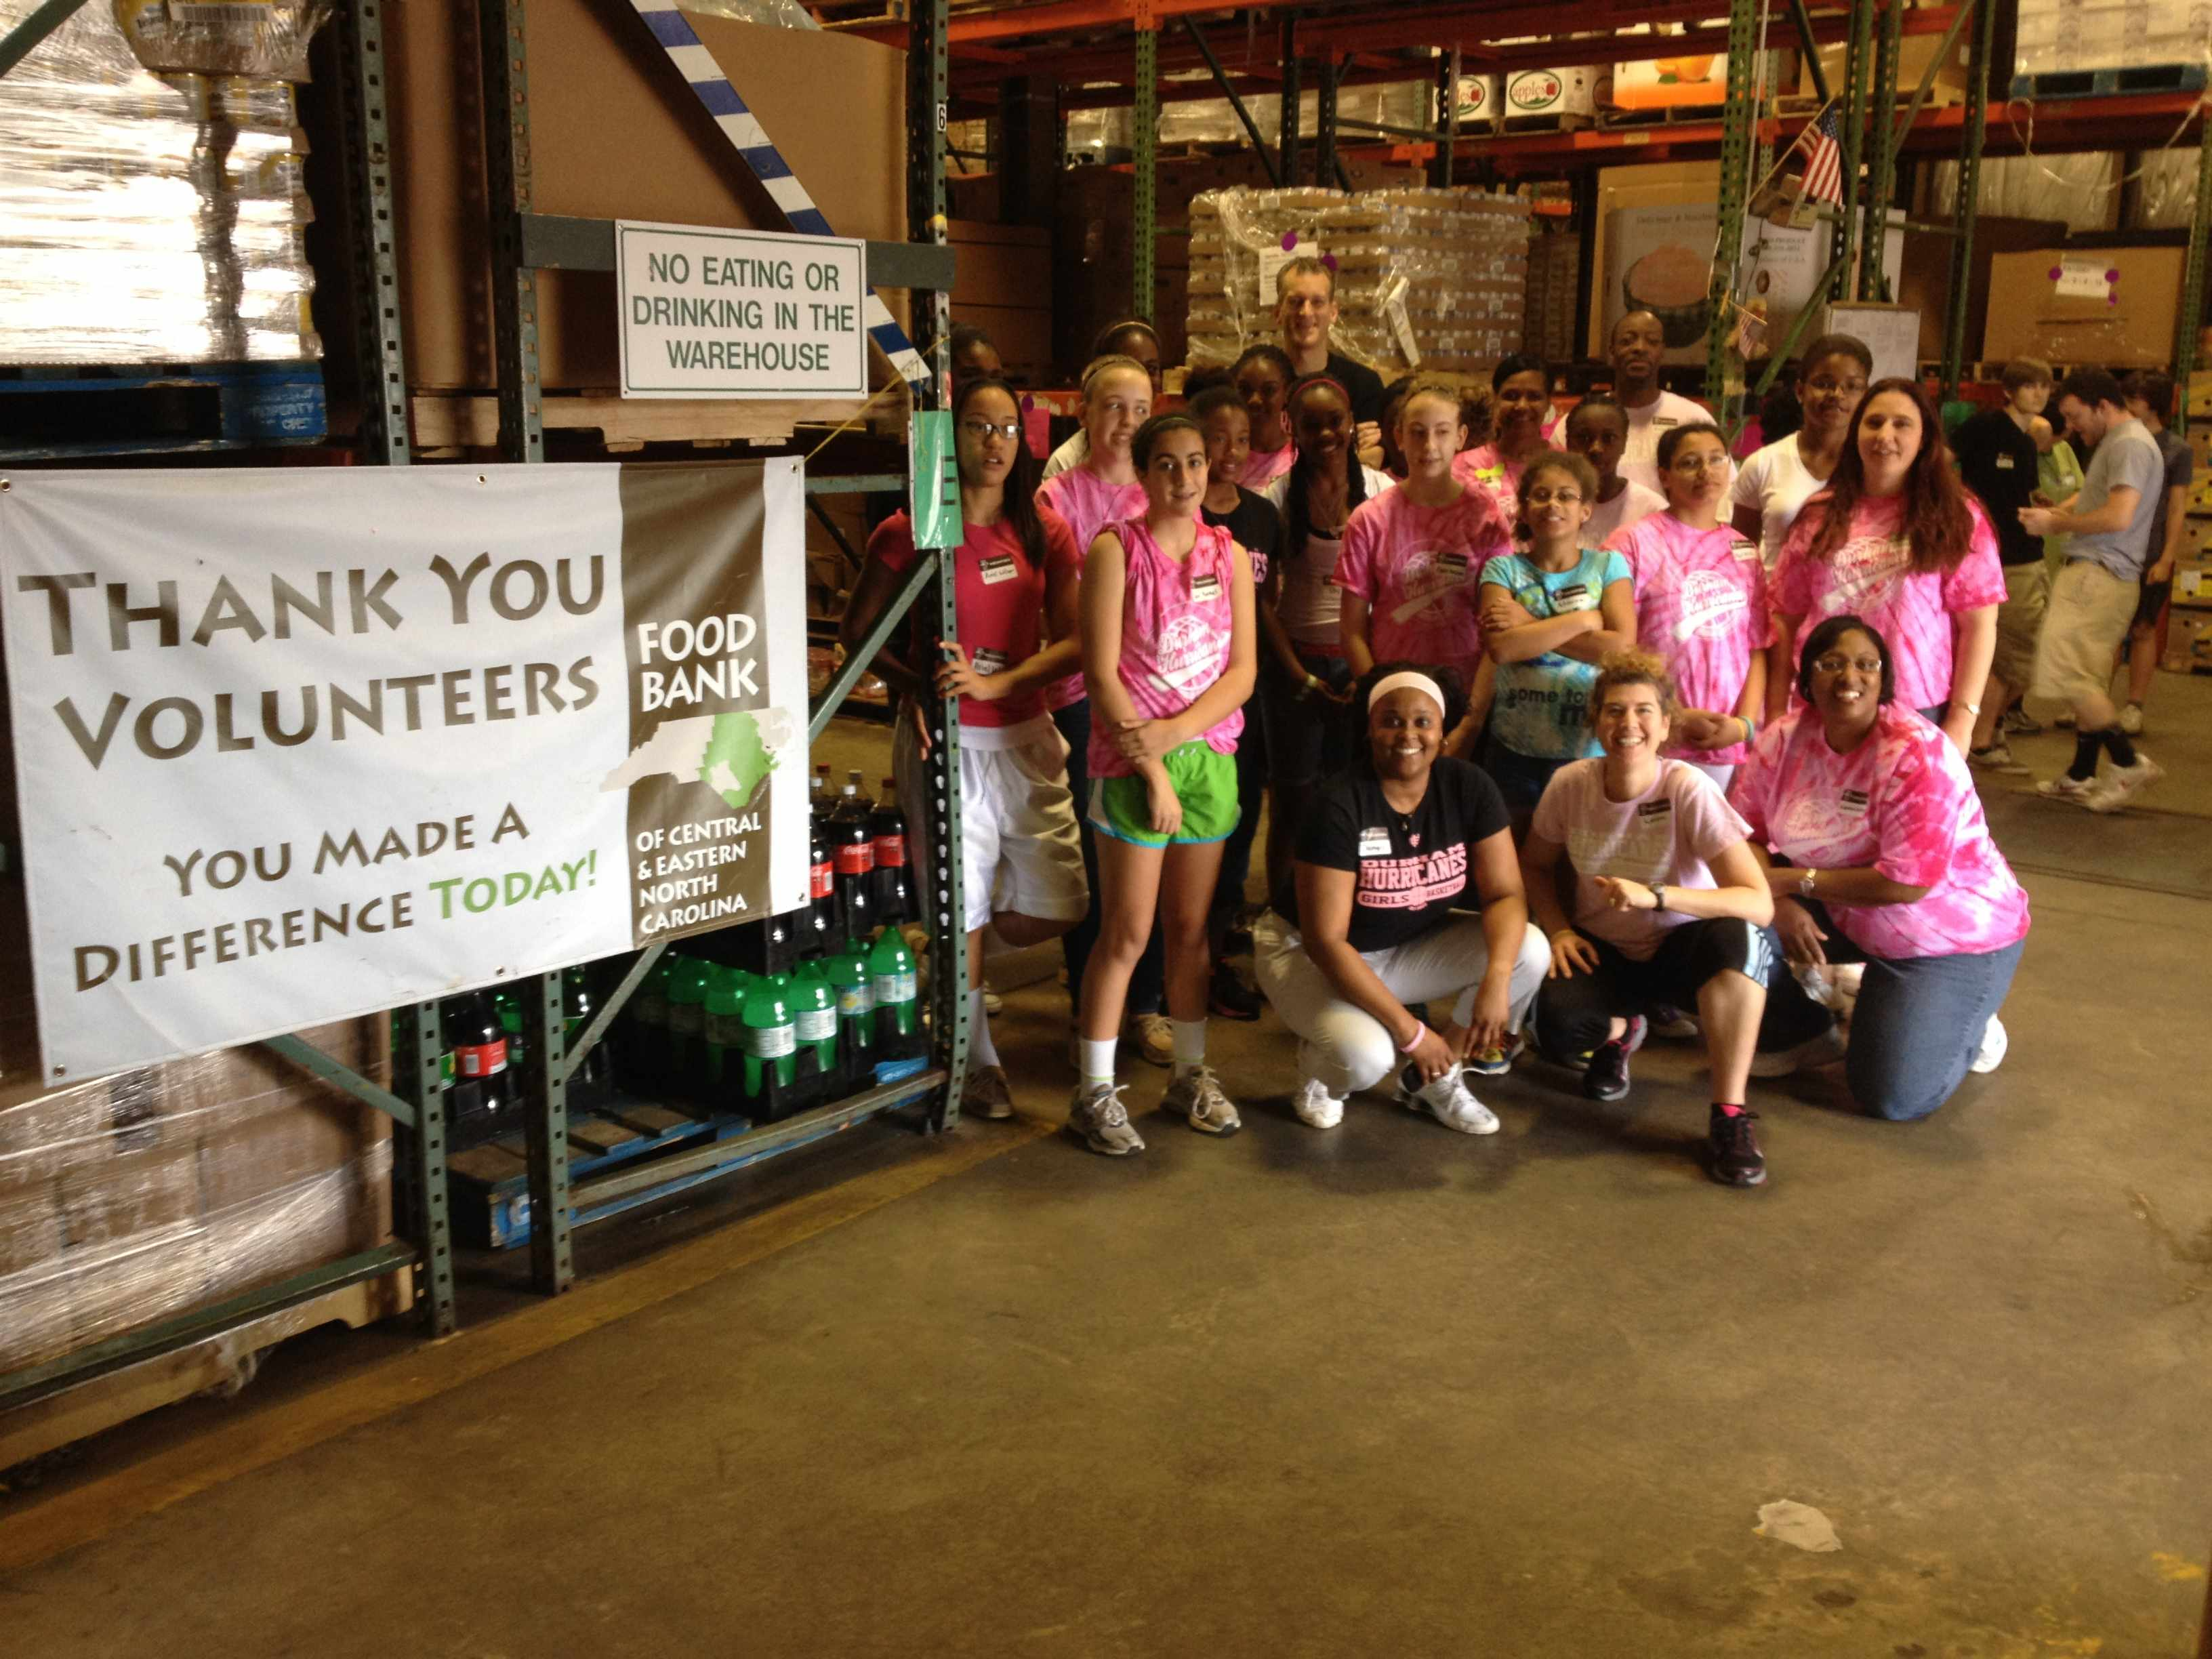 DH group pic at food bank